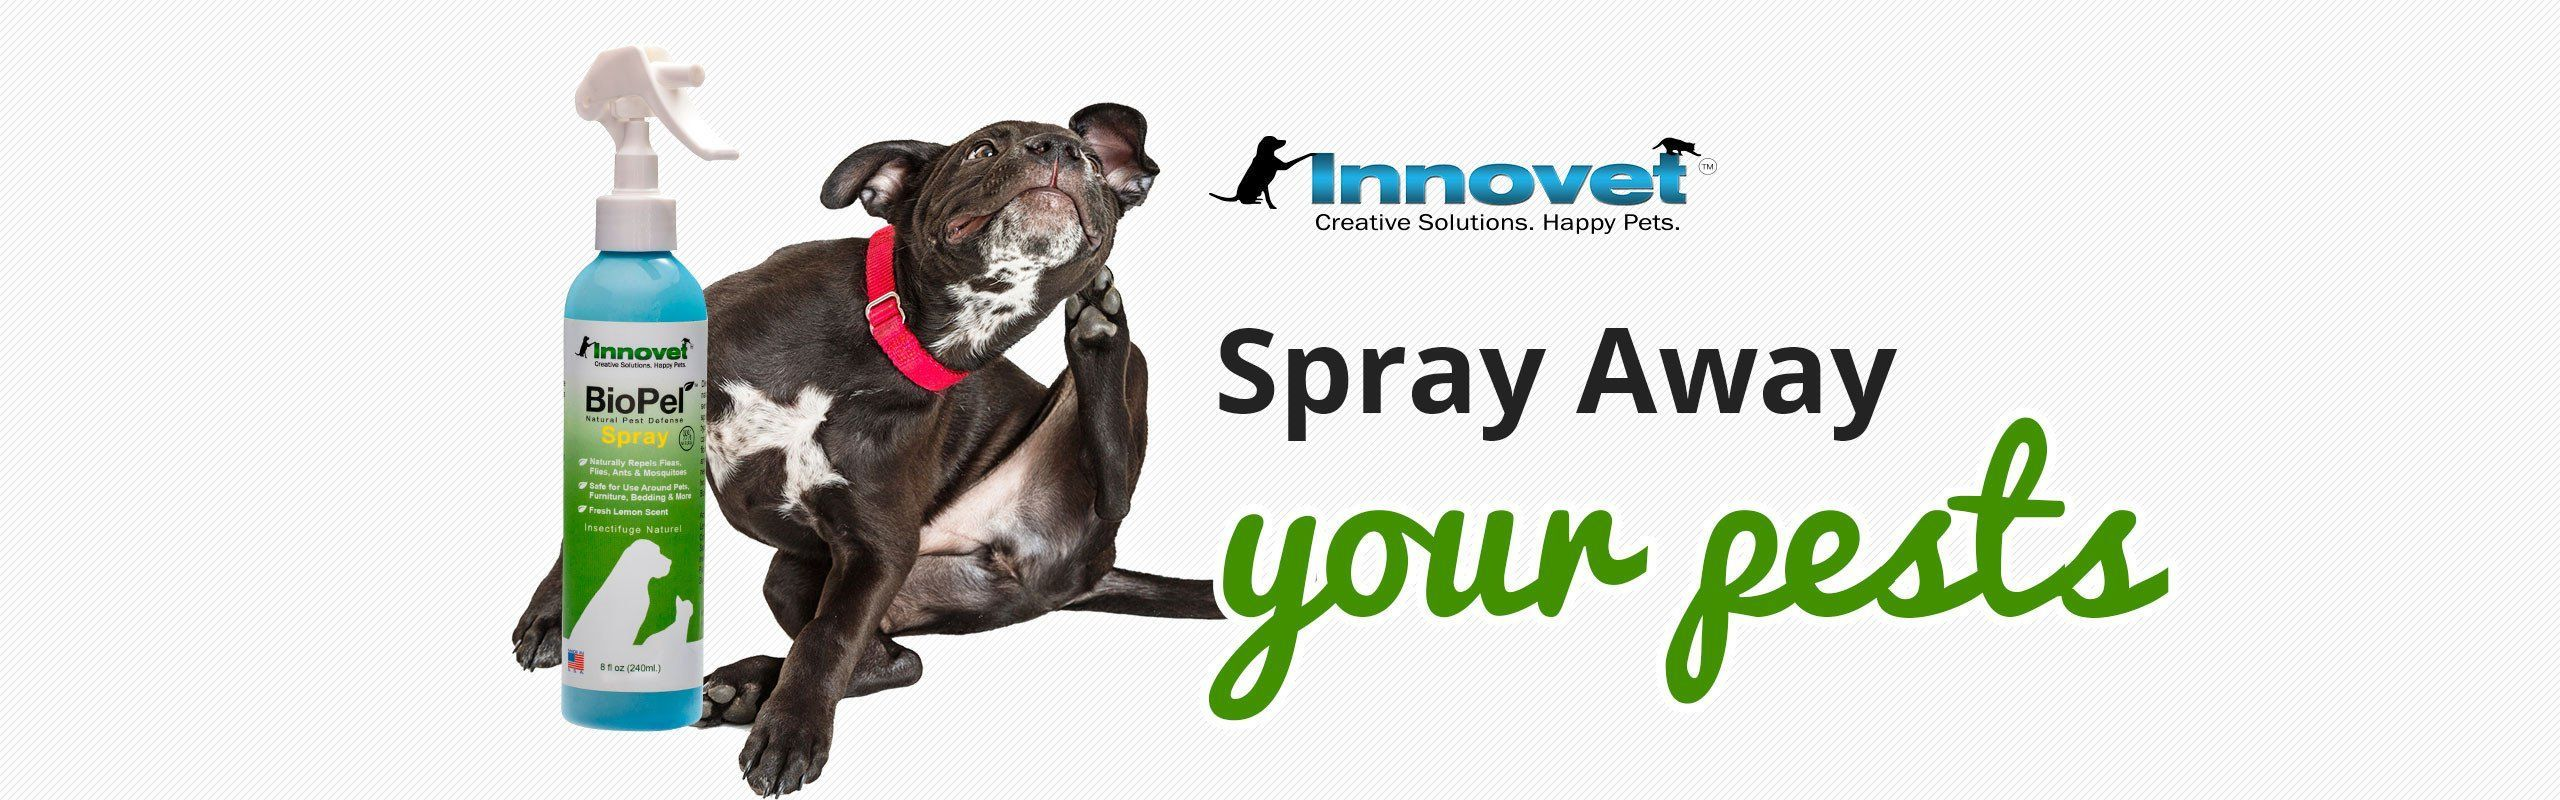 All Biopel Spray Line Catsprayingproducts With Images Insect Control Spray Natural Pest Control